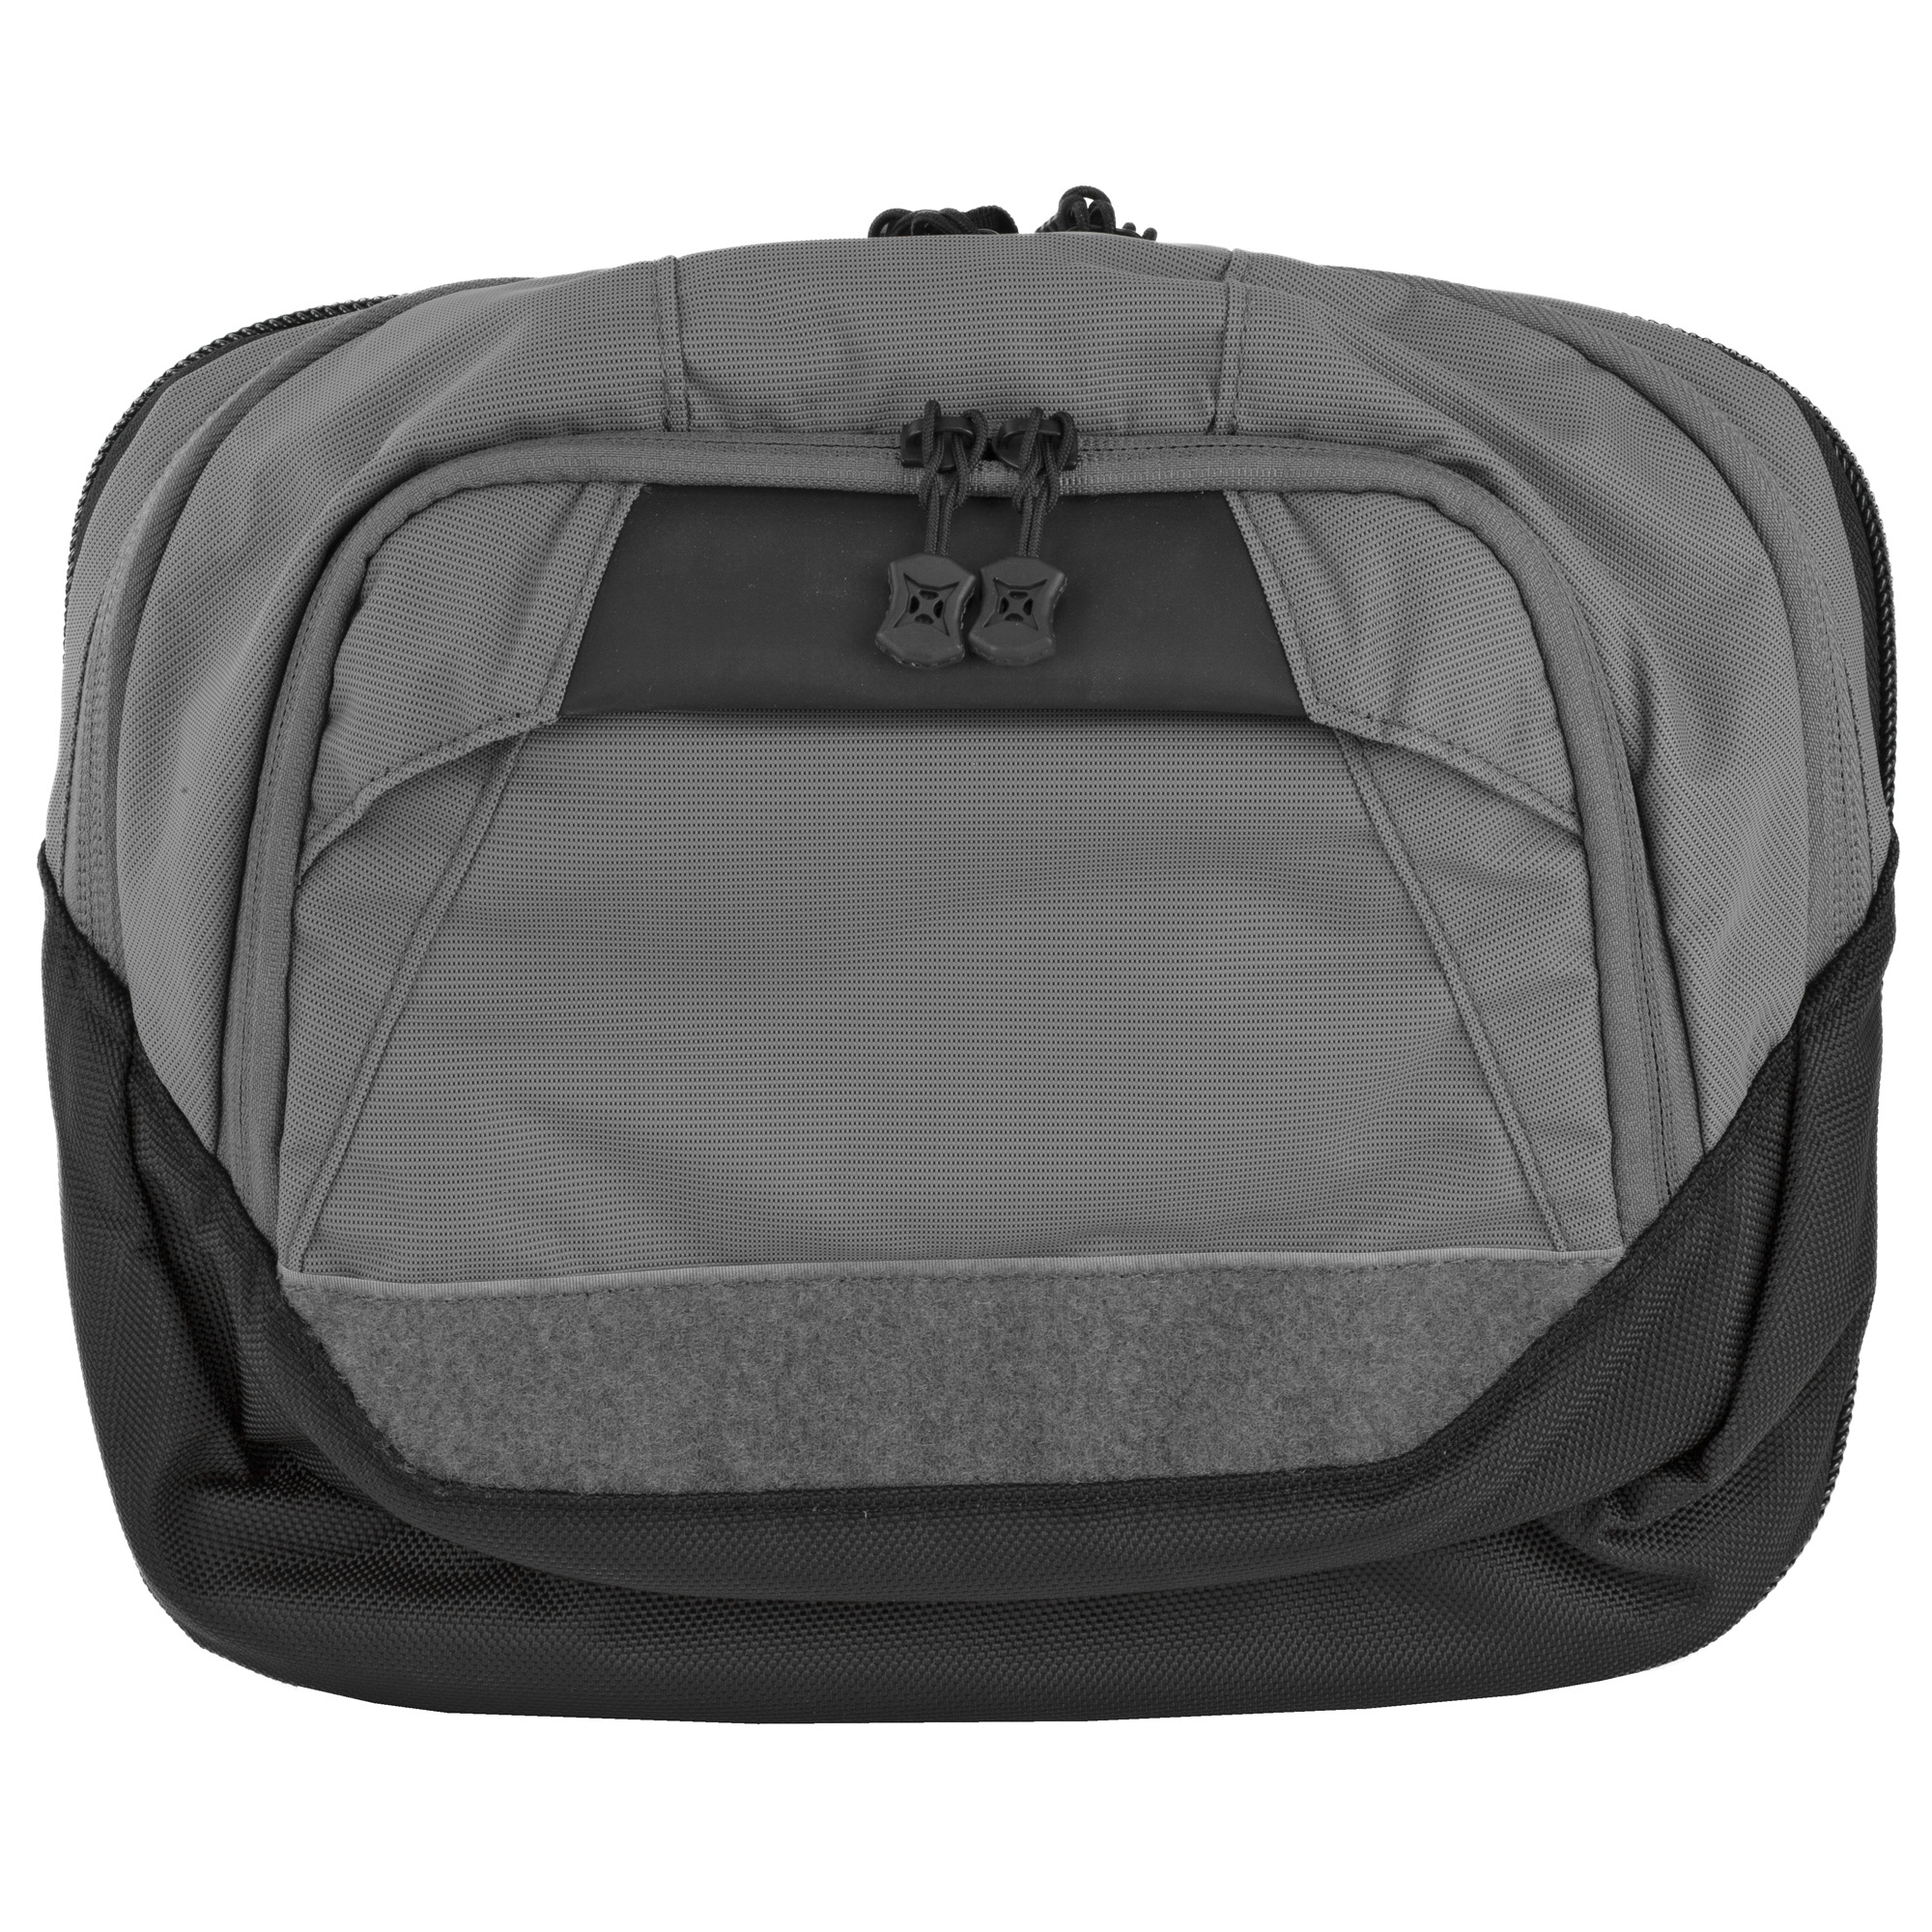 This mini go-bag carries the essentials you require and can swiftly maneuver from traditional carry to a chest rig when the situation changes. The Tourist Sling's rapid access to the CCW platform is complemented by the wide-opening main compartment and plenty of internal organization and panels for adding Tactigami accessories.